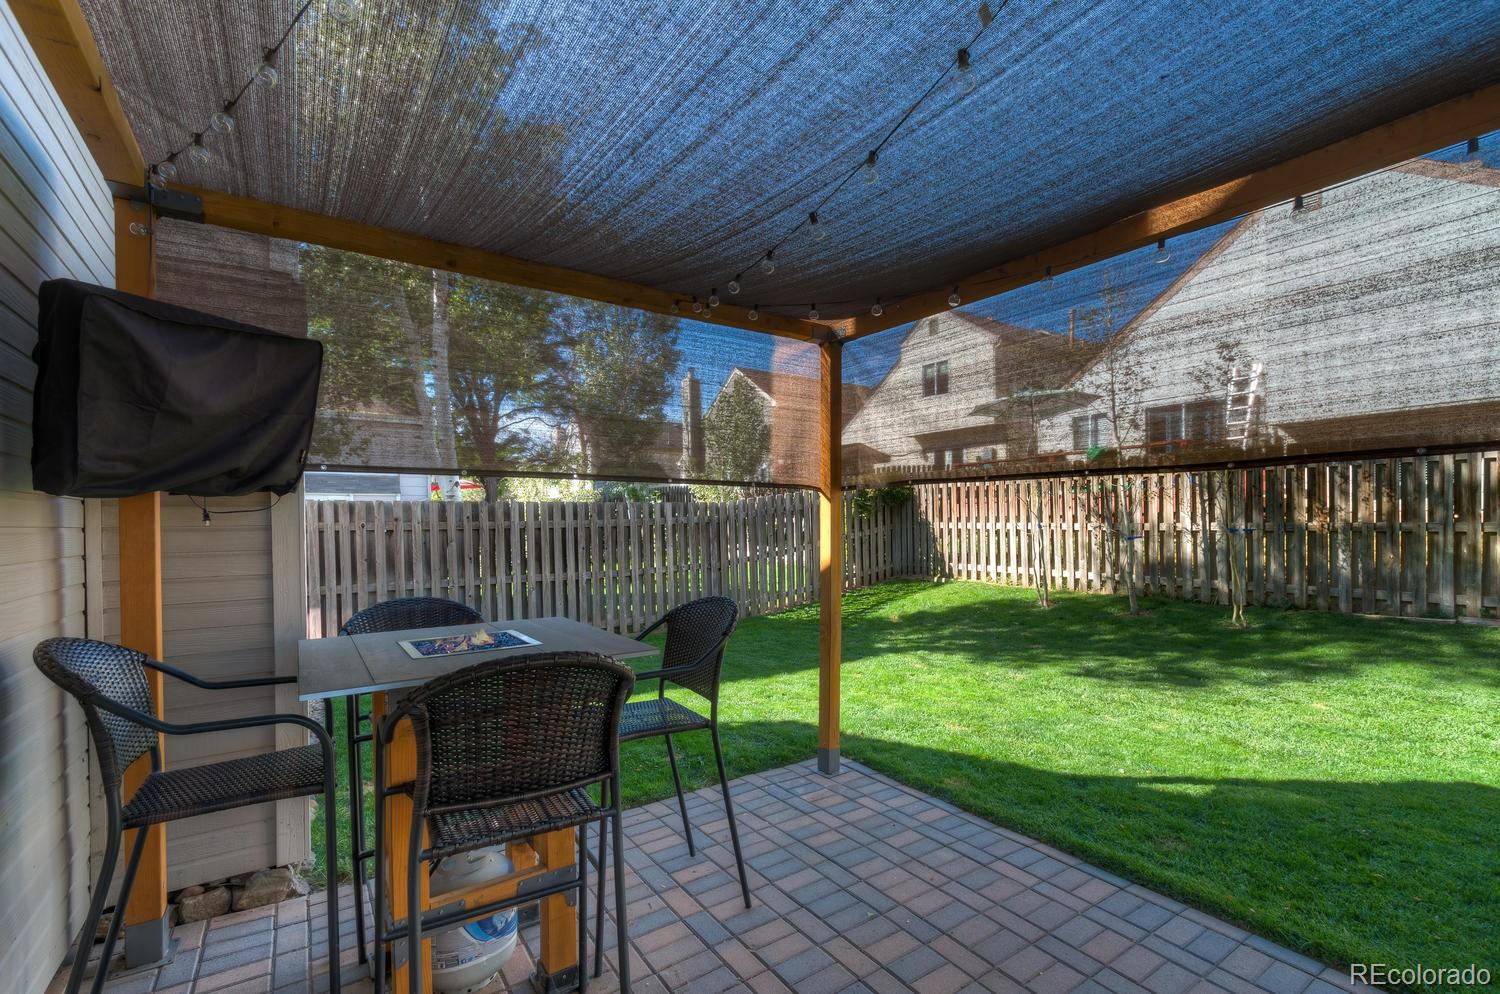 MLS# 2006537 - 28 - 5629 S Youngfield Way, Littleton, CO 80127